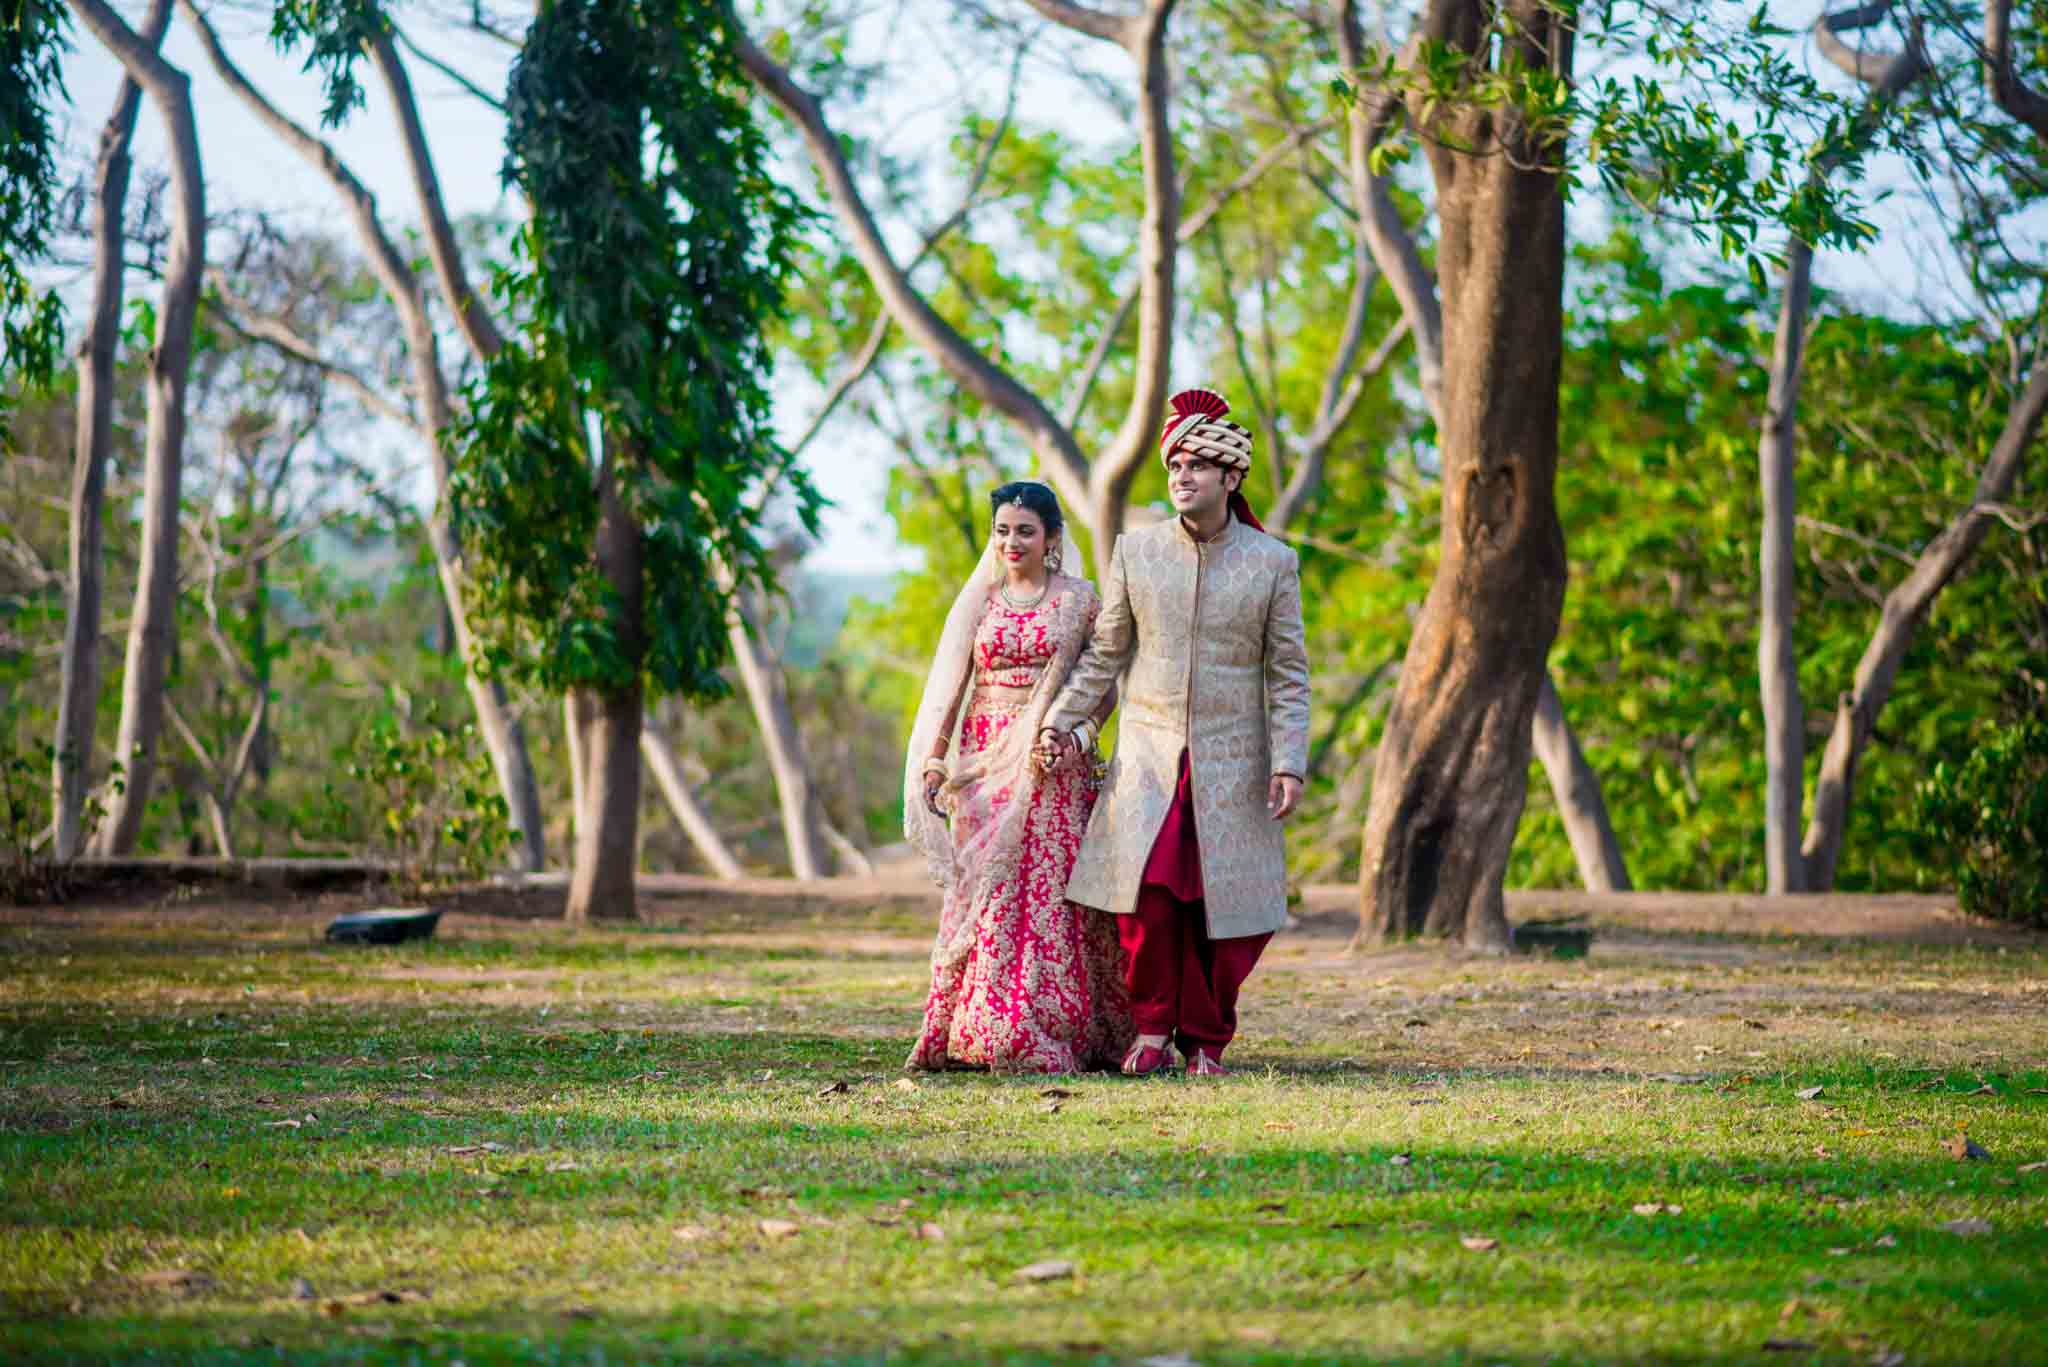 mumbai-candid-photography-wedding-whatknot-kamal-amrohi-studios-50